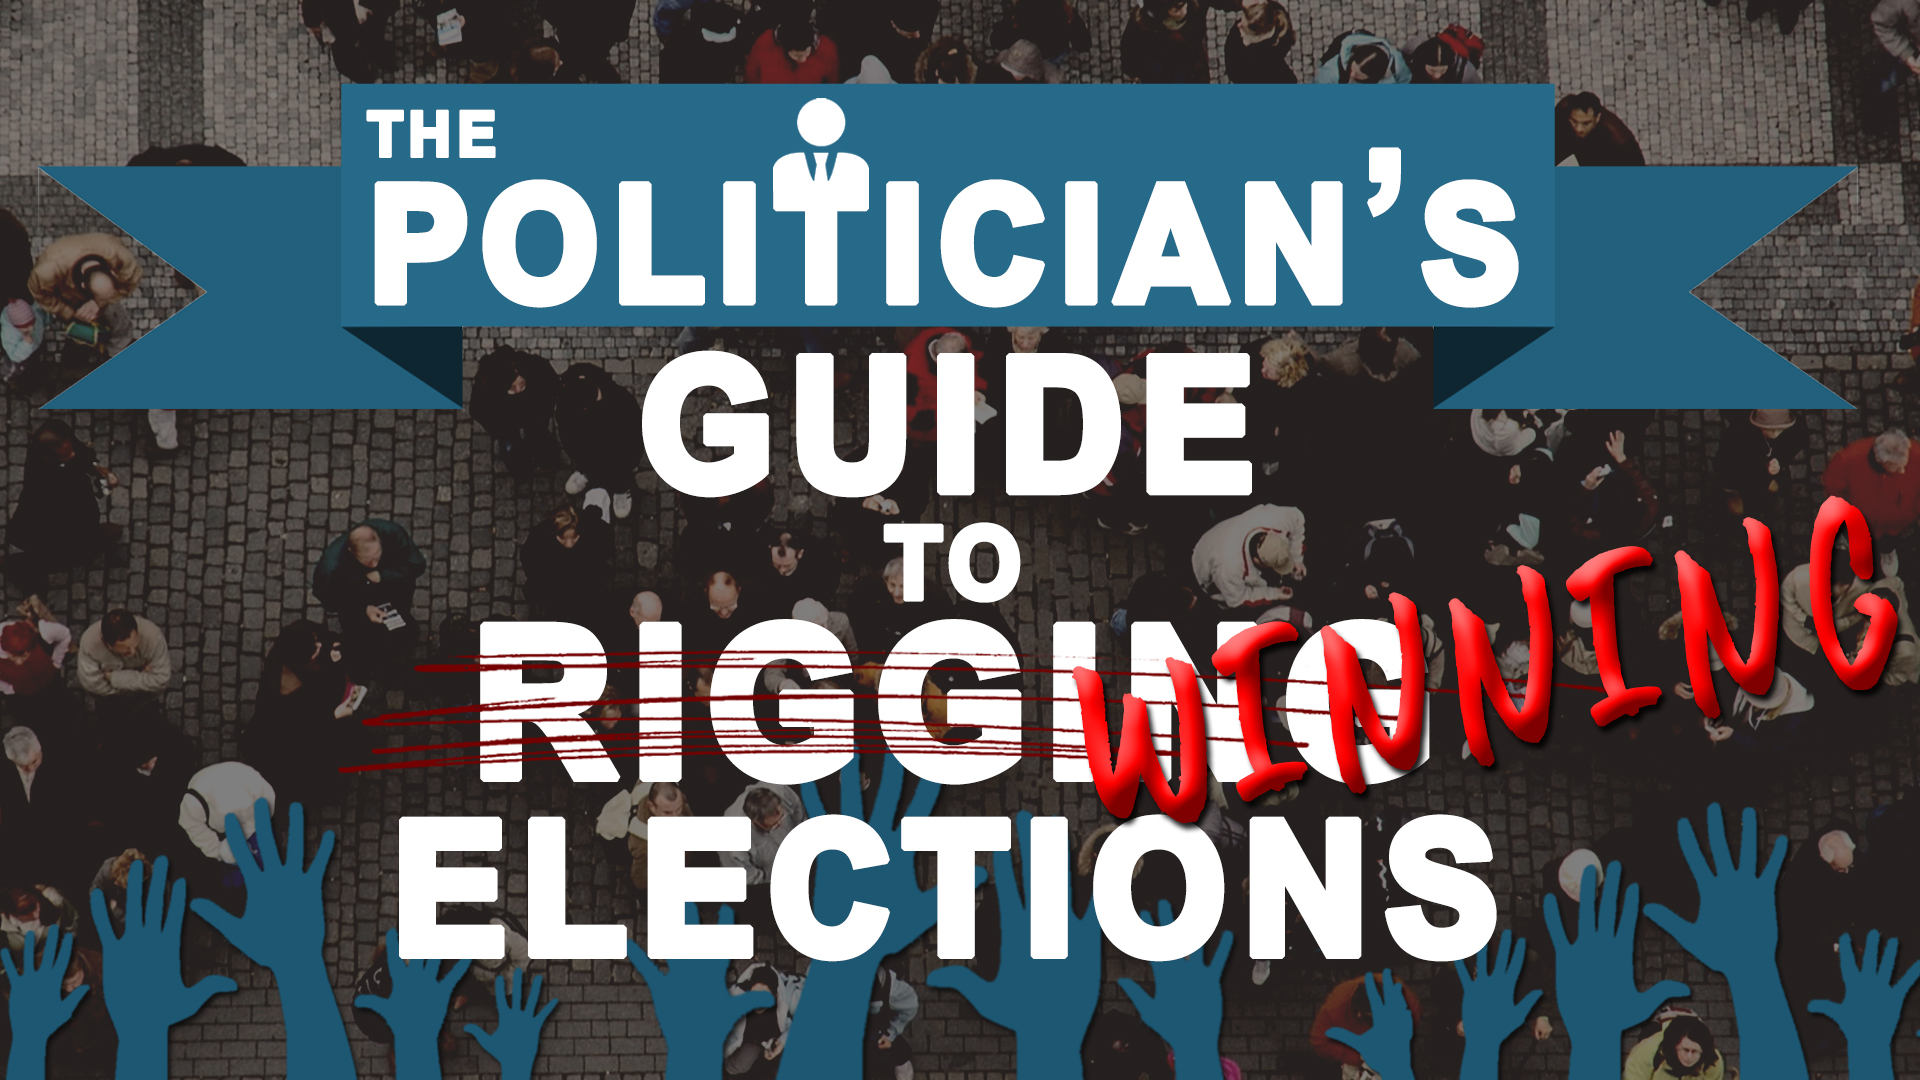 Politicians Guide Thumbnail.jpg